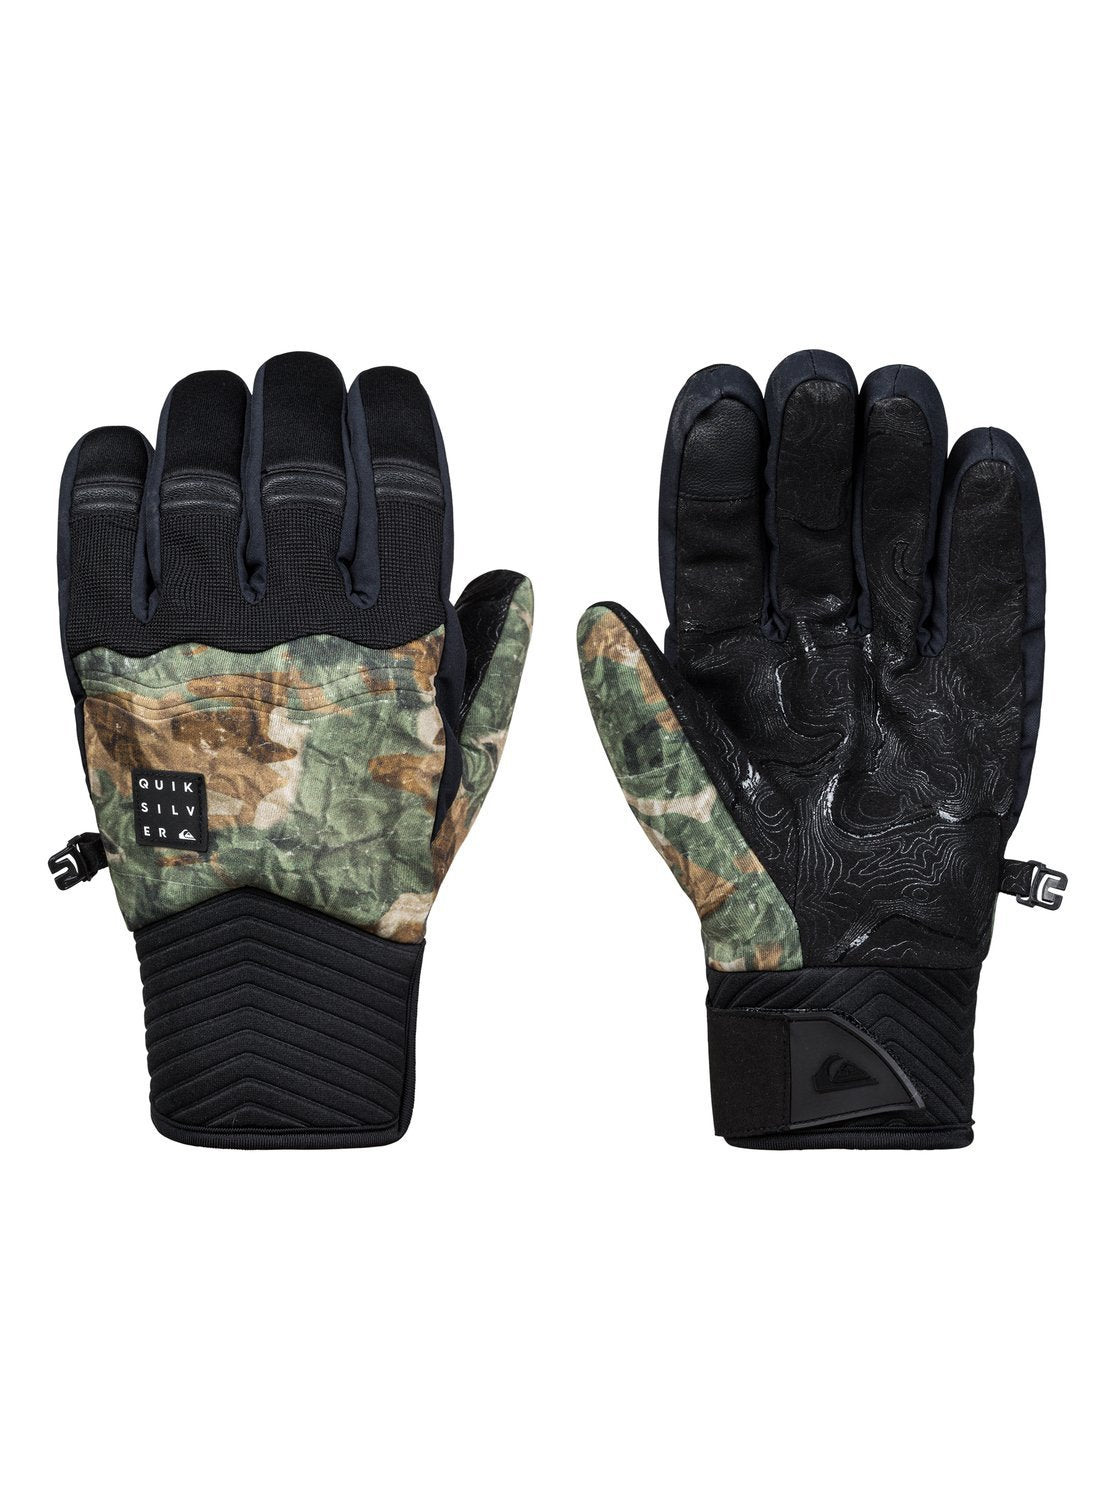 Quiksilver Method Snowboard and Ski Gloves - 88 Gear